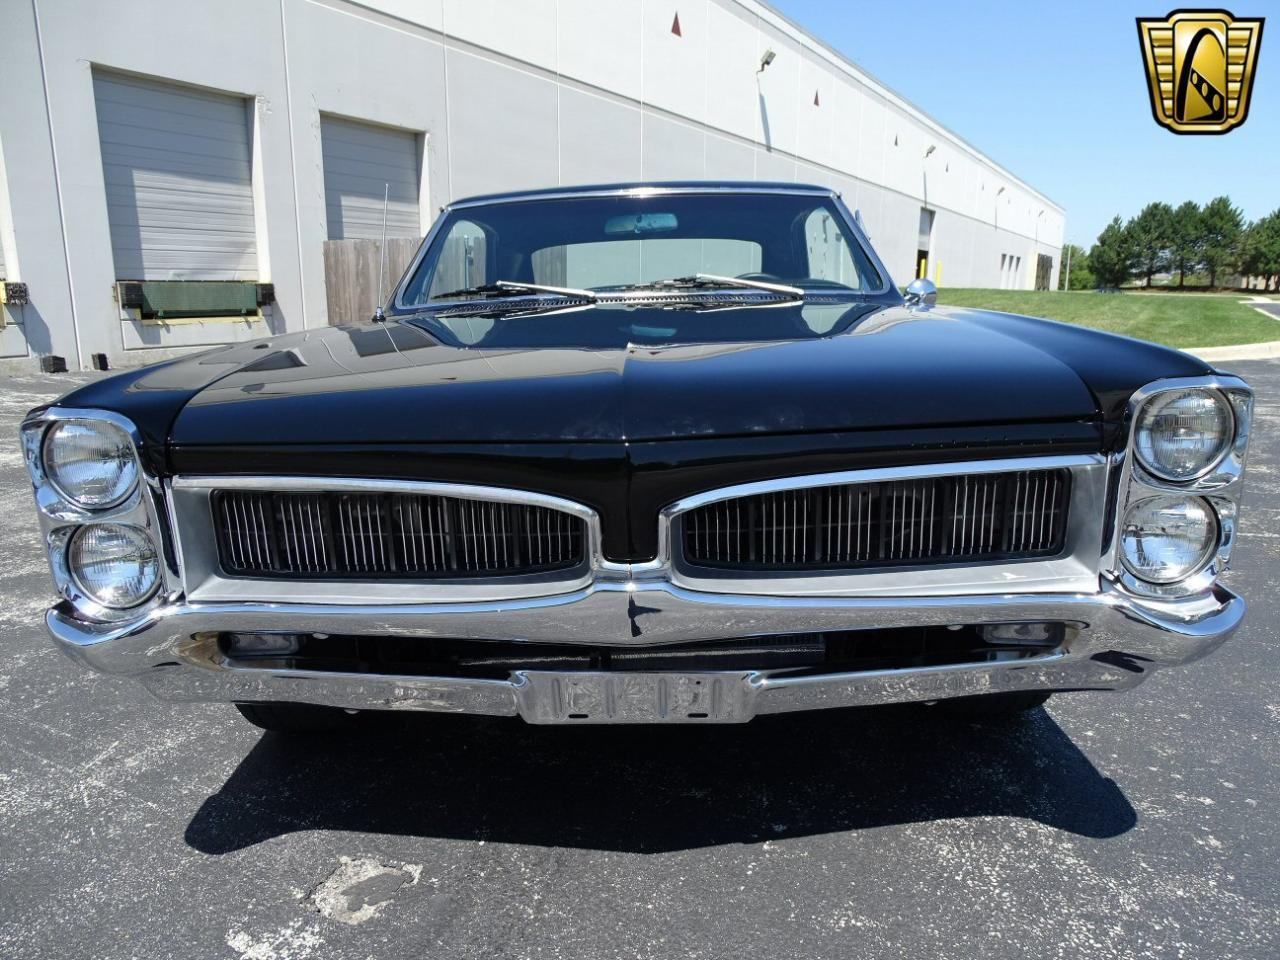 Large Picture of 1967 Pontiac LeMans - $22,595.00 Offered by Gateway Classic Cars - Chicago - LH9D